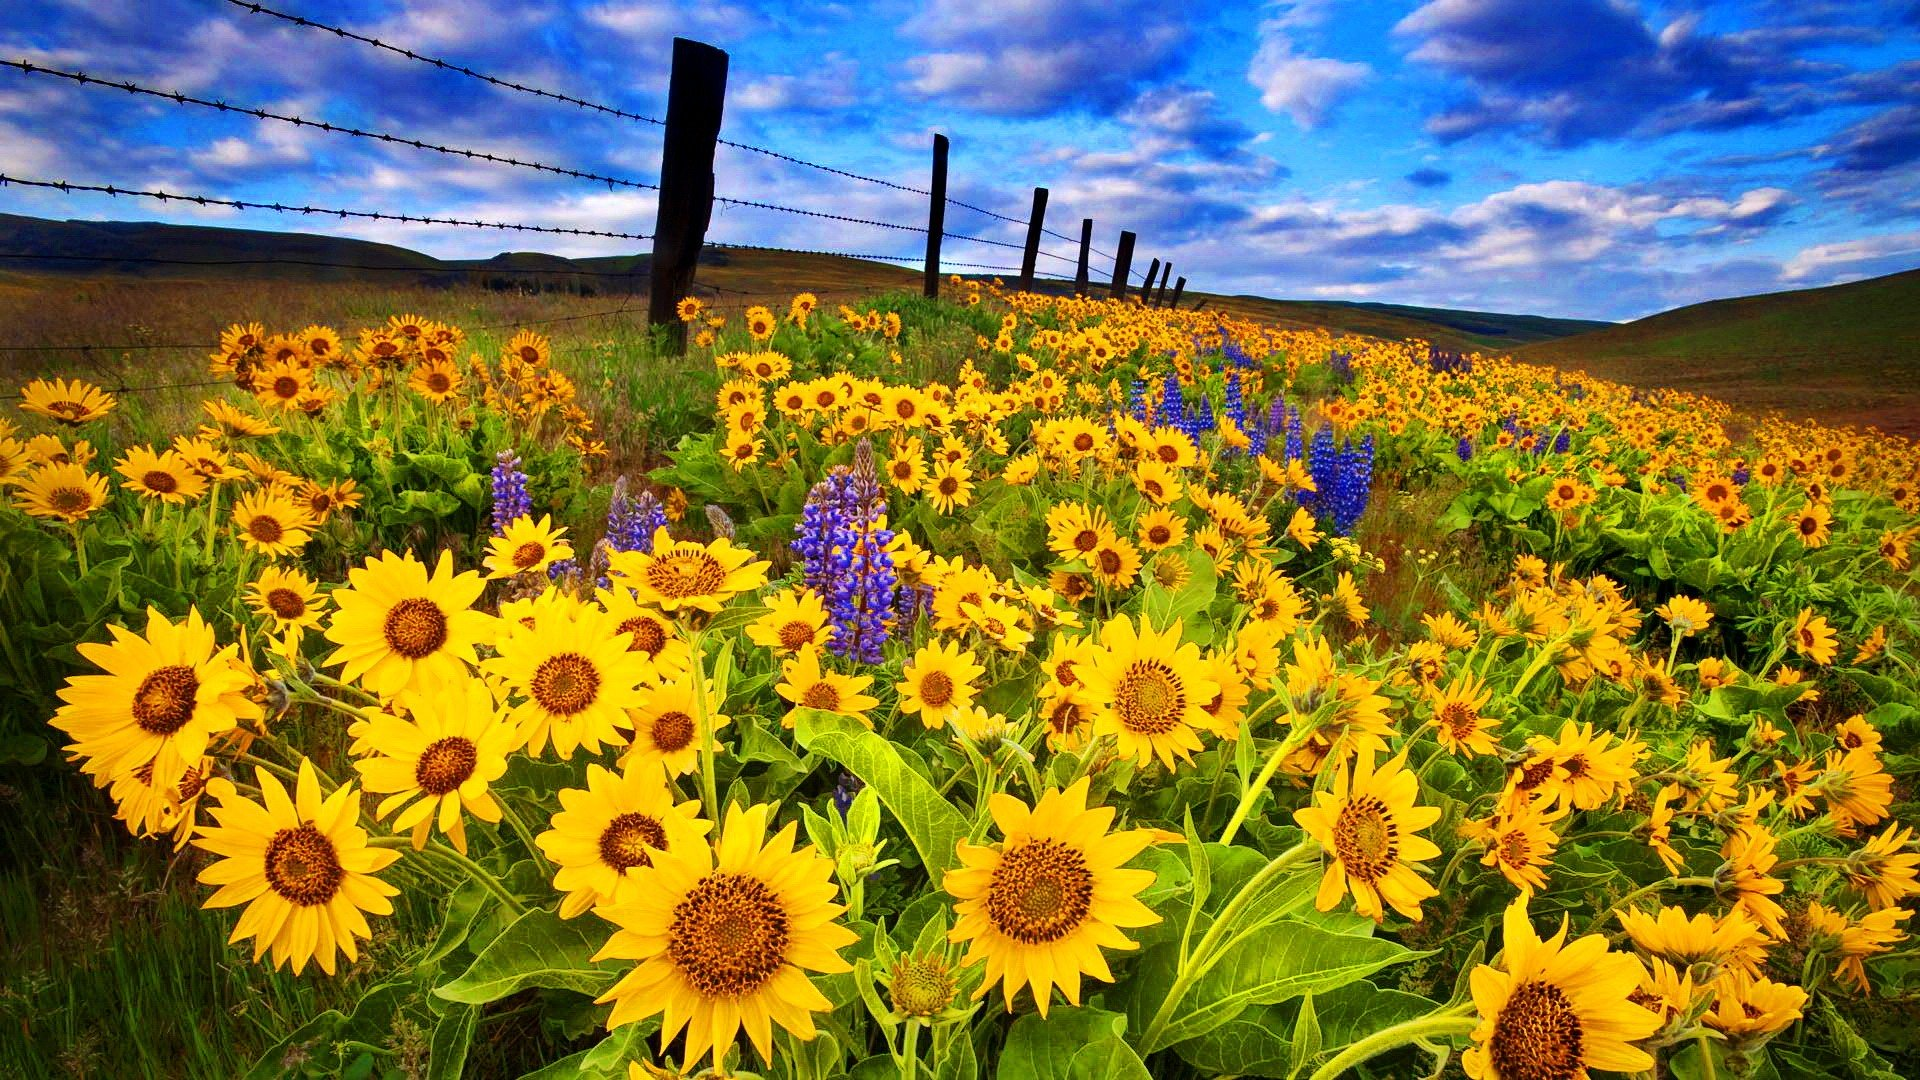 Sunflower Desktop Backgrounds Posted By Ryan Thompson